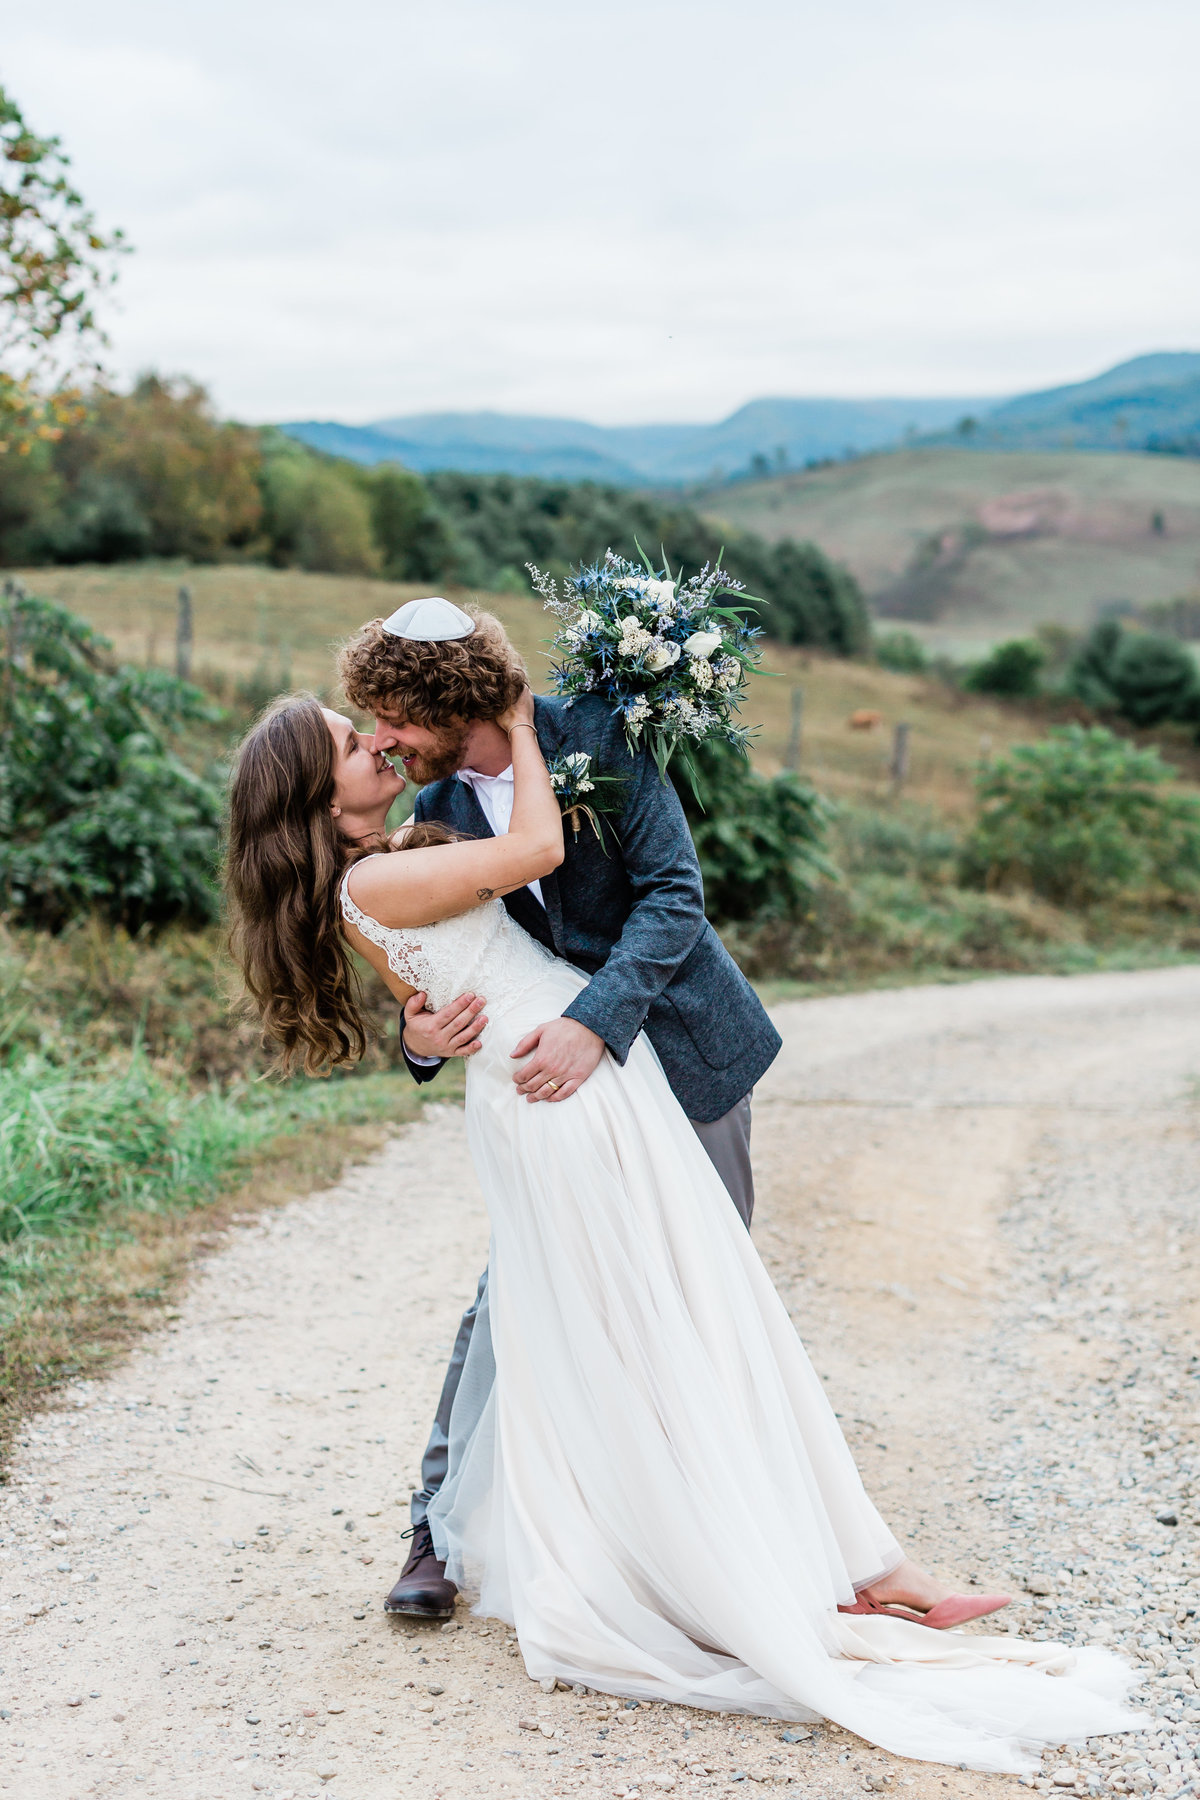 Danielle-Defayette-Photography-Mountain-Laurel-Farm-Wedding-Virginia-319